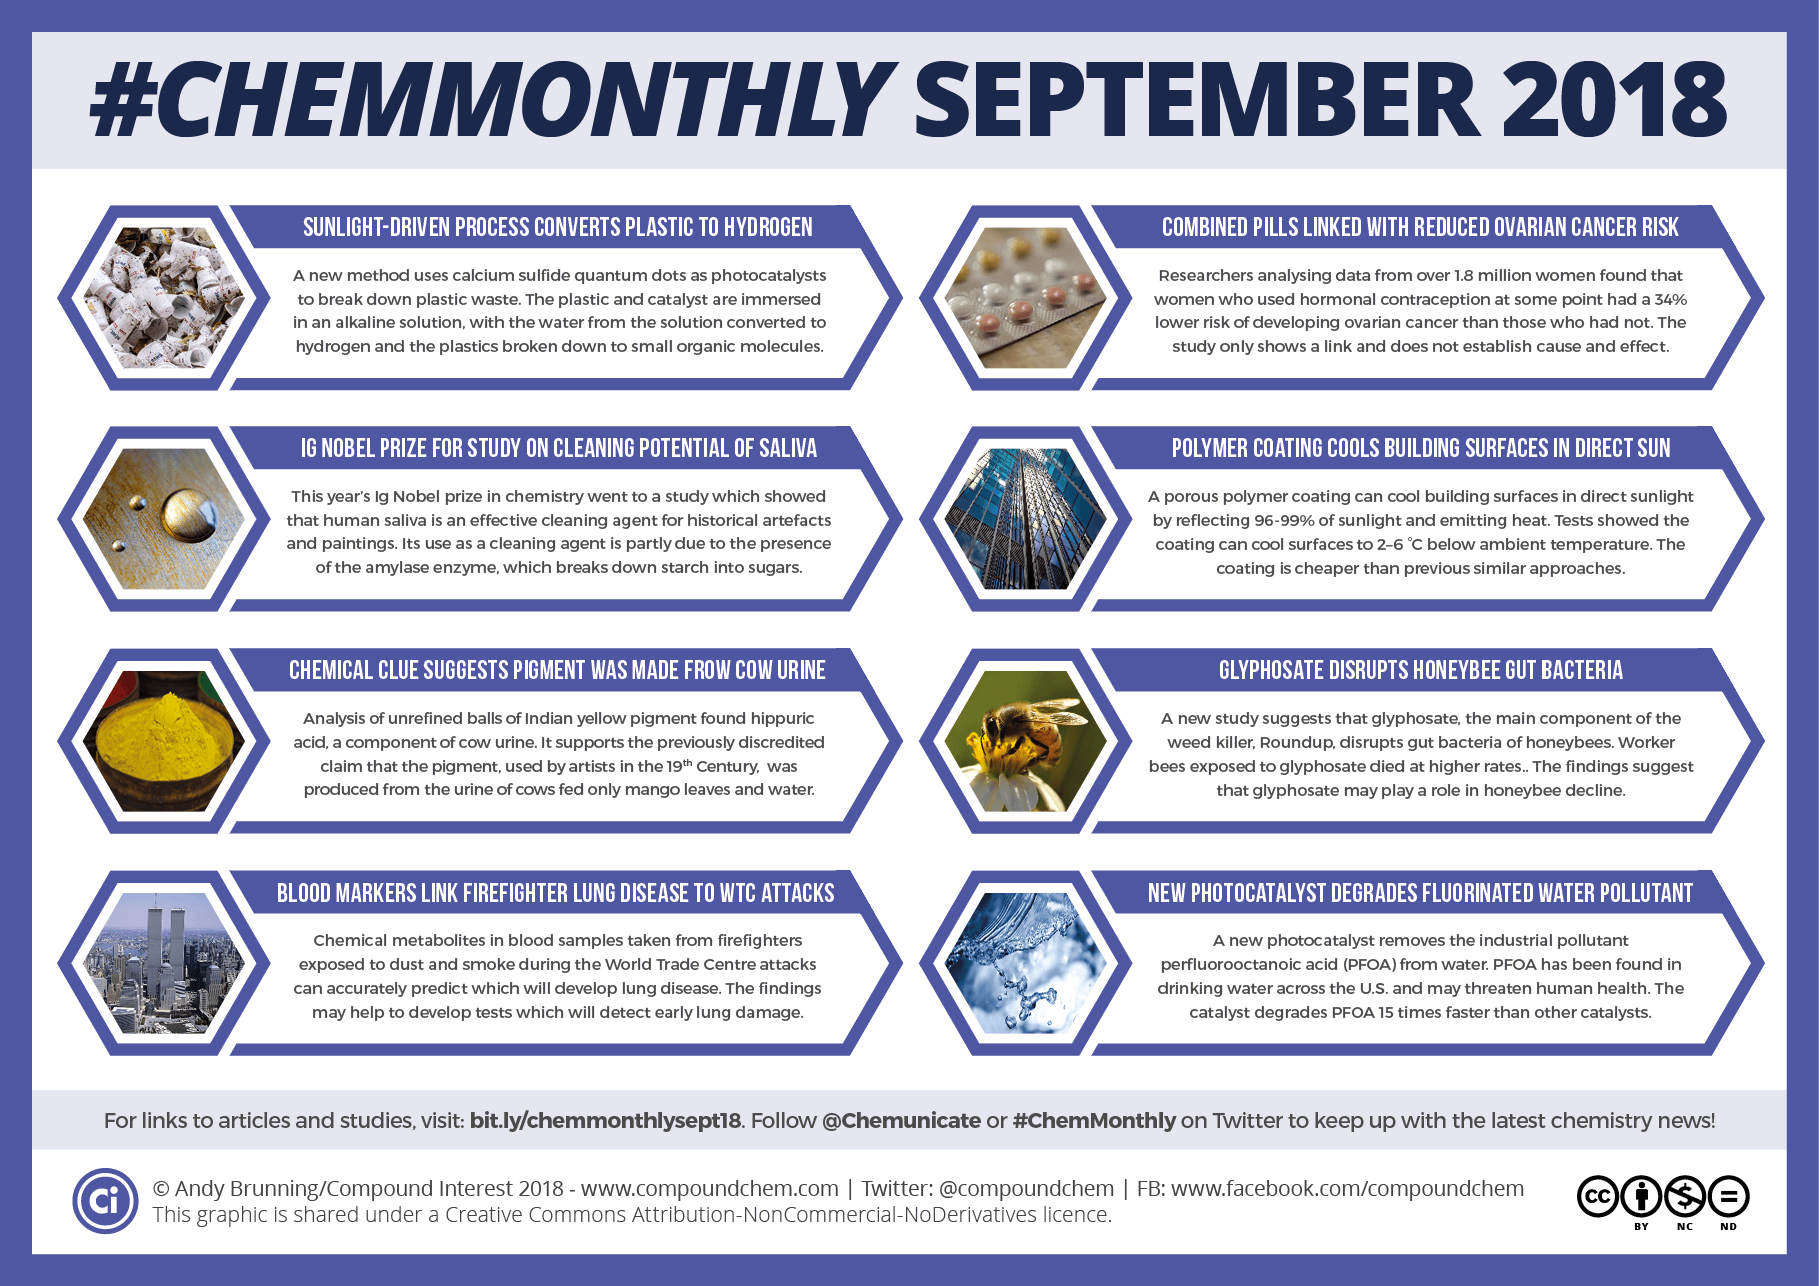 Chemmonthly September 2018 Hydrogen From Plastic Waste The